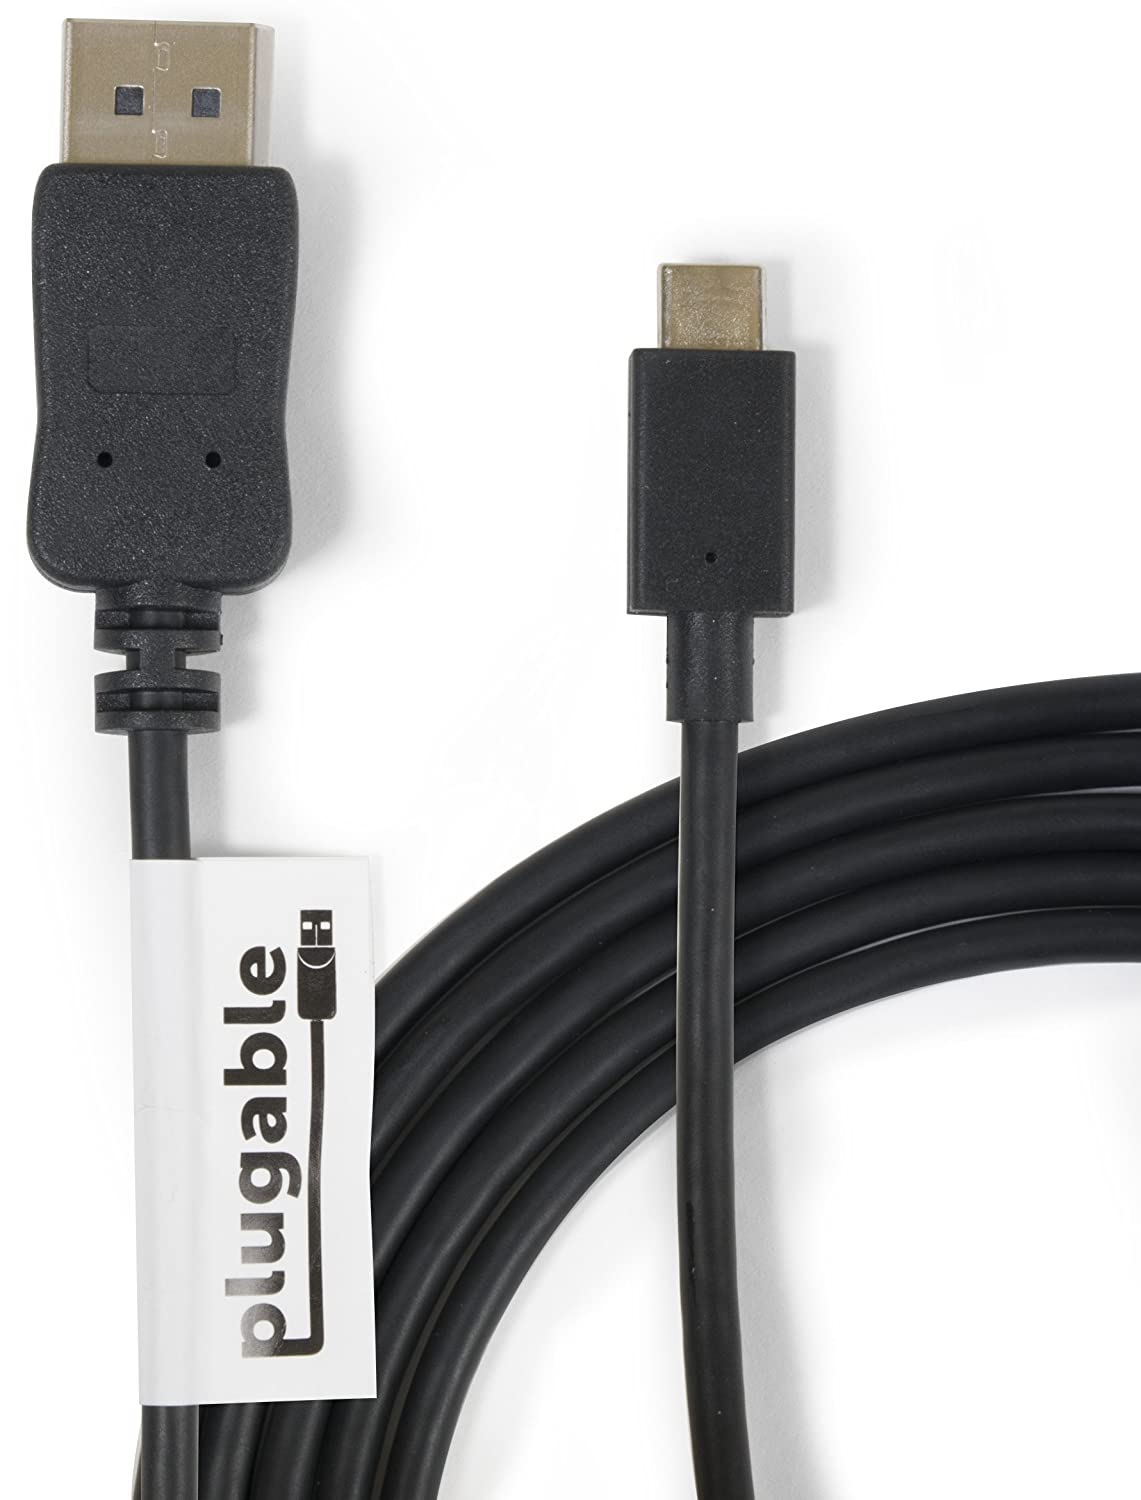 Plugable Usb C To Displayport Adapter 6ft 18m Power Injector For External Hard Drivesusb Cable Supports Resolutions Up 4k At 60hz Computers Accessories